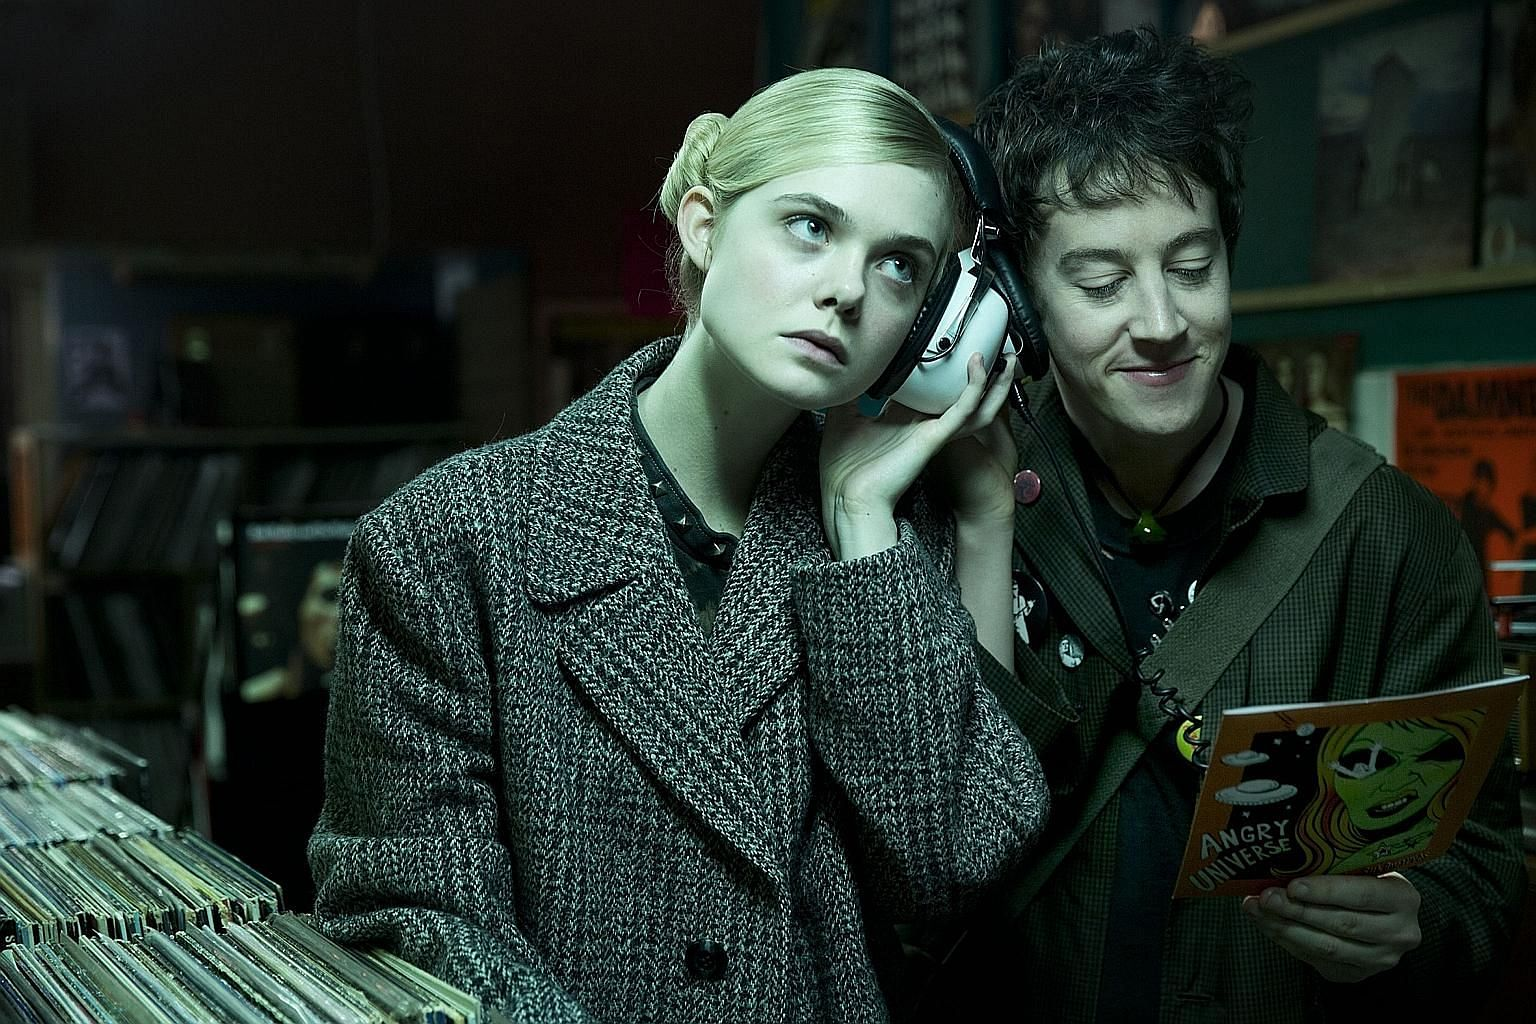 Elle Fanning and Alex Sharp star in How To Talk To Girls At Parties.